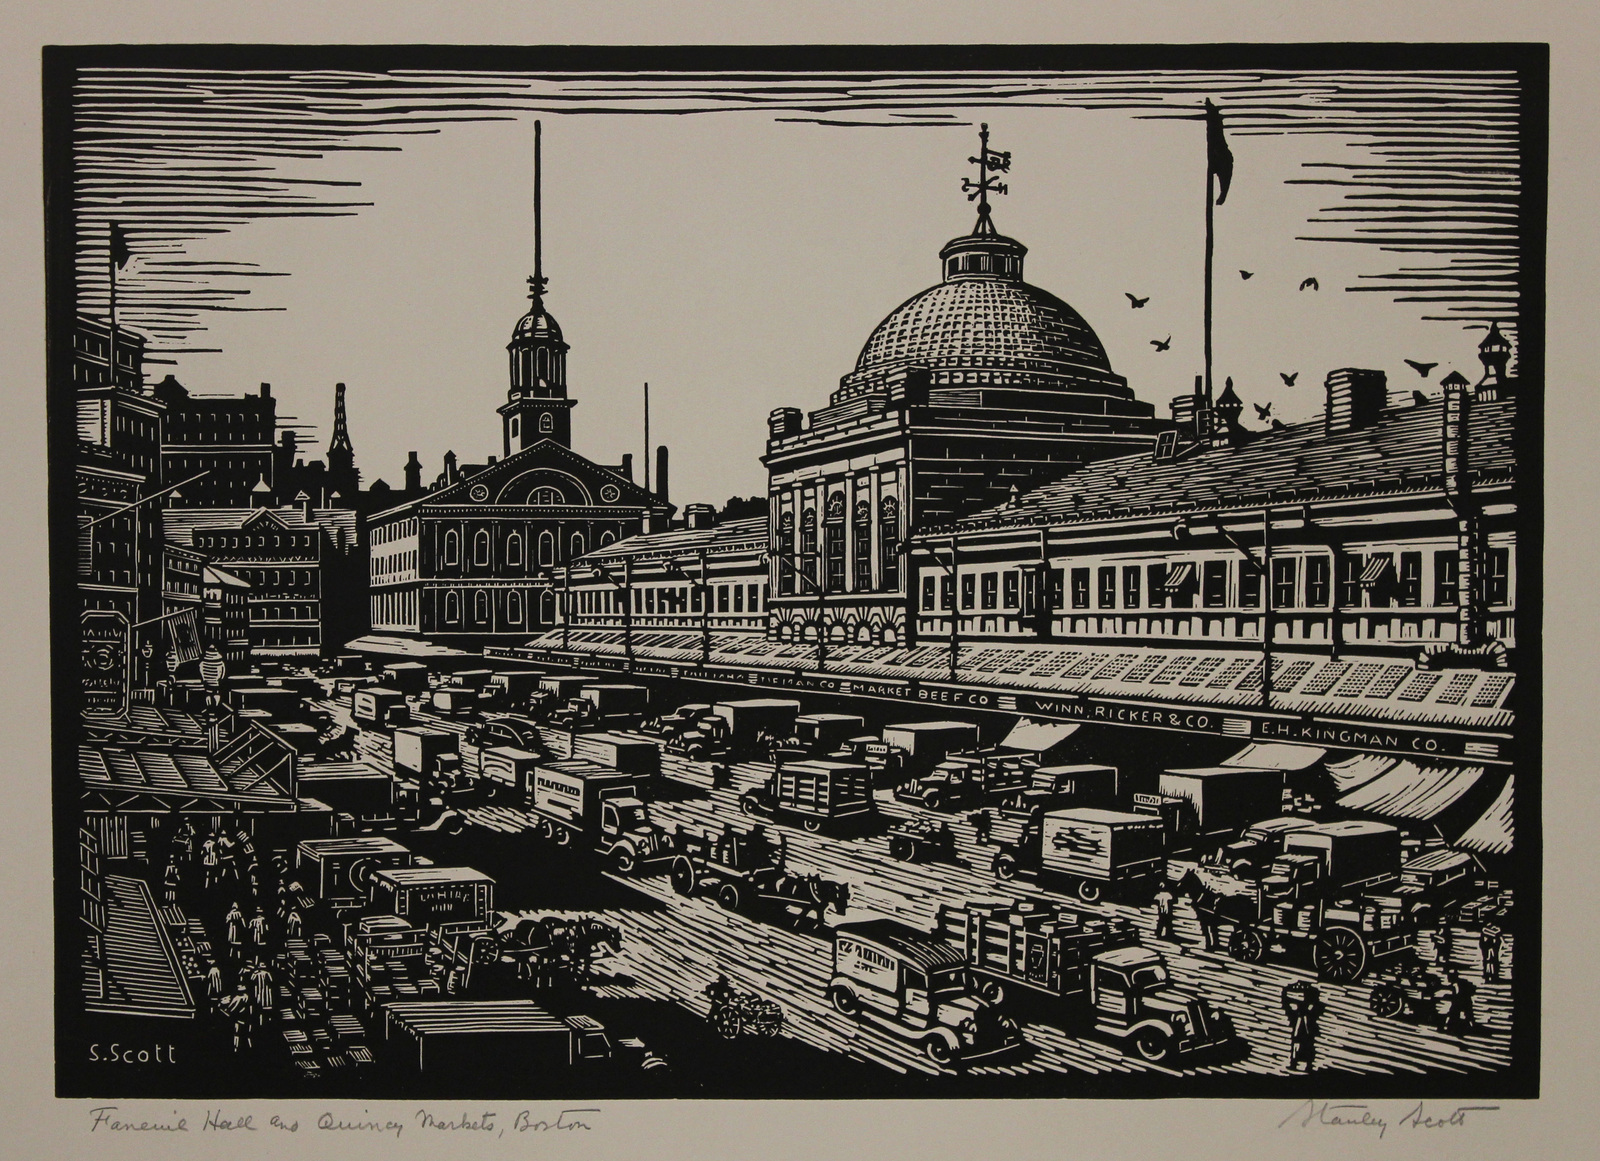 Faneuil Hall at Quincy Market in Massachusetts by Stanley Scott